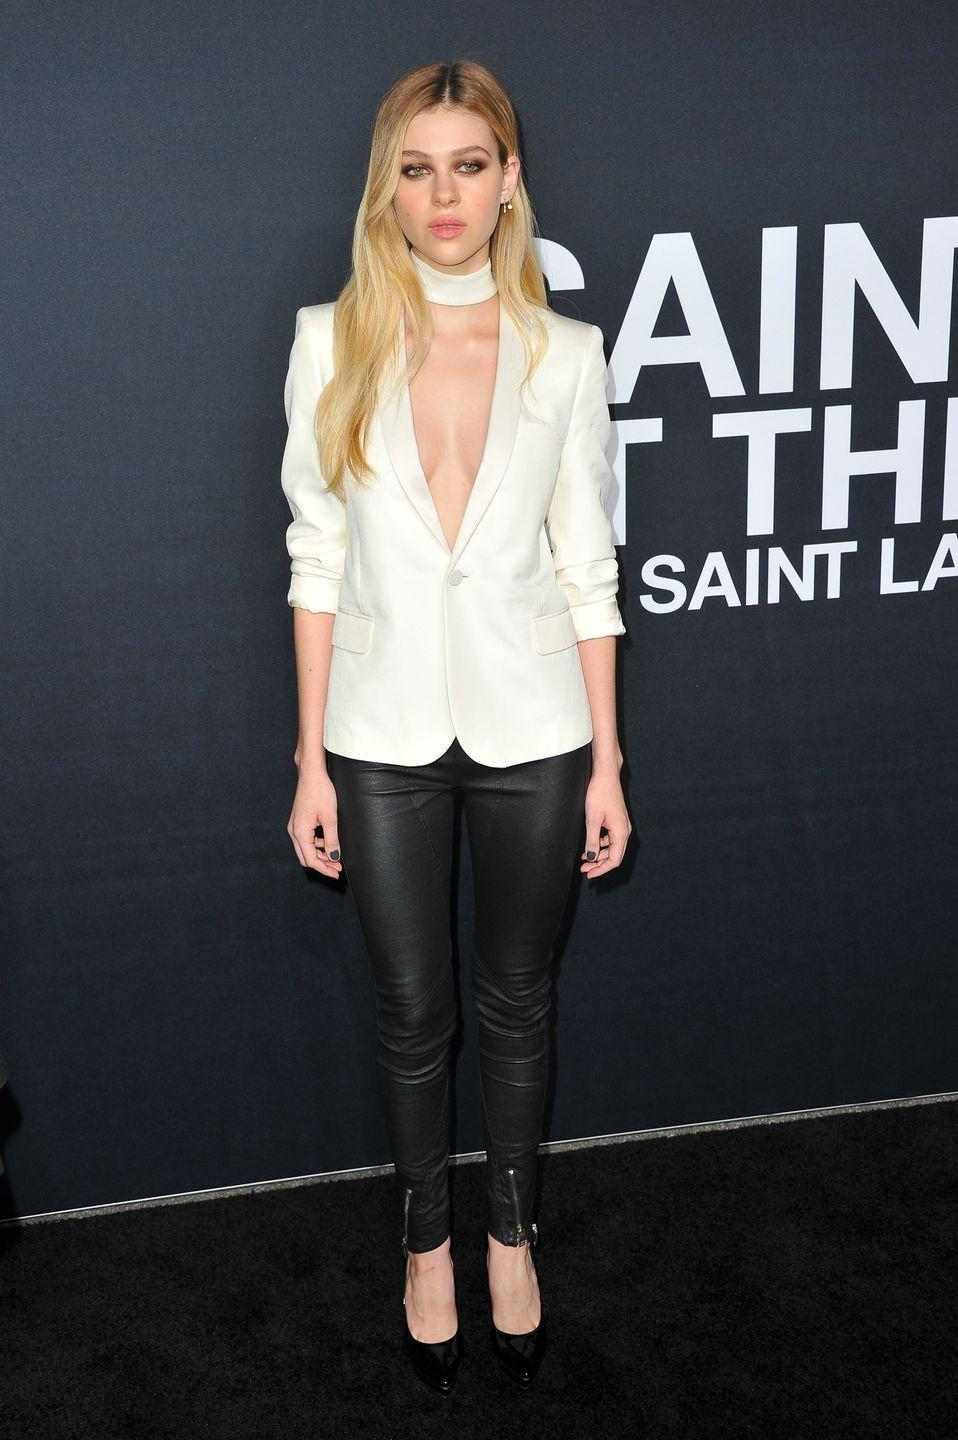 <p>The star wore a white suit jacket, without a bra, and black leather trousers to the Hollywood Palladium in Los Angeles. </p>